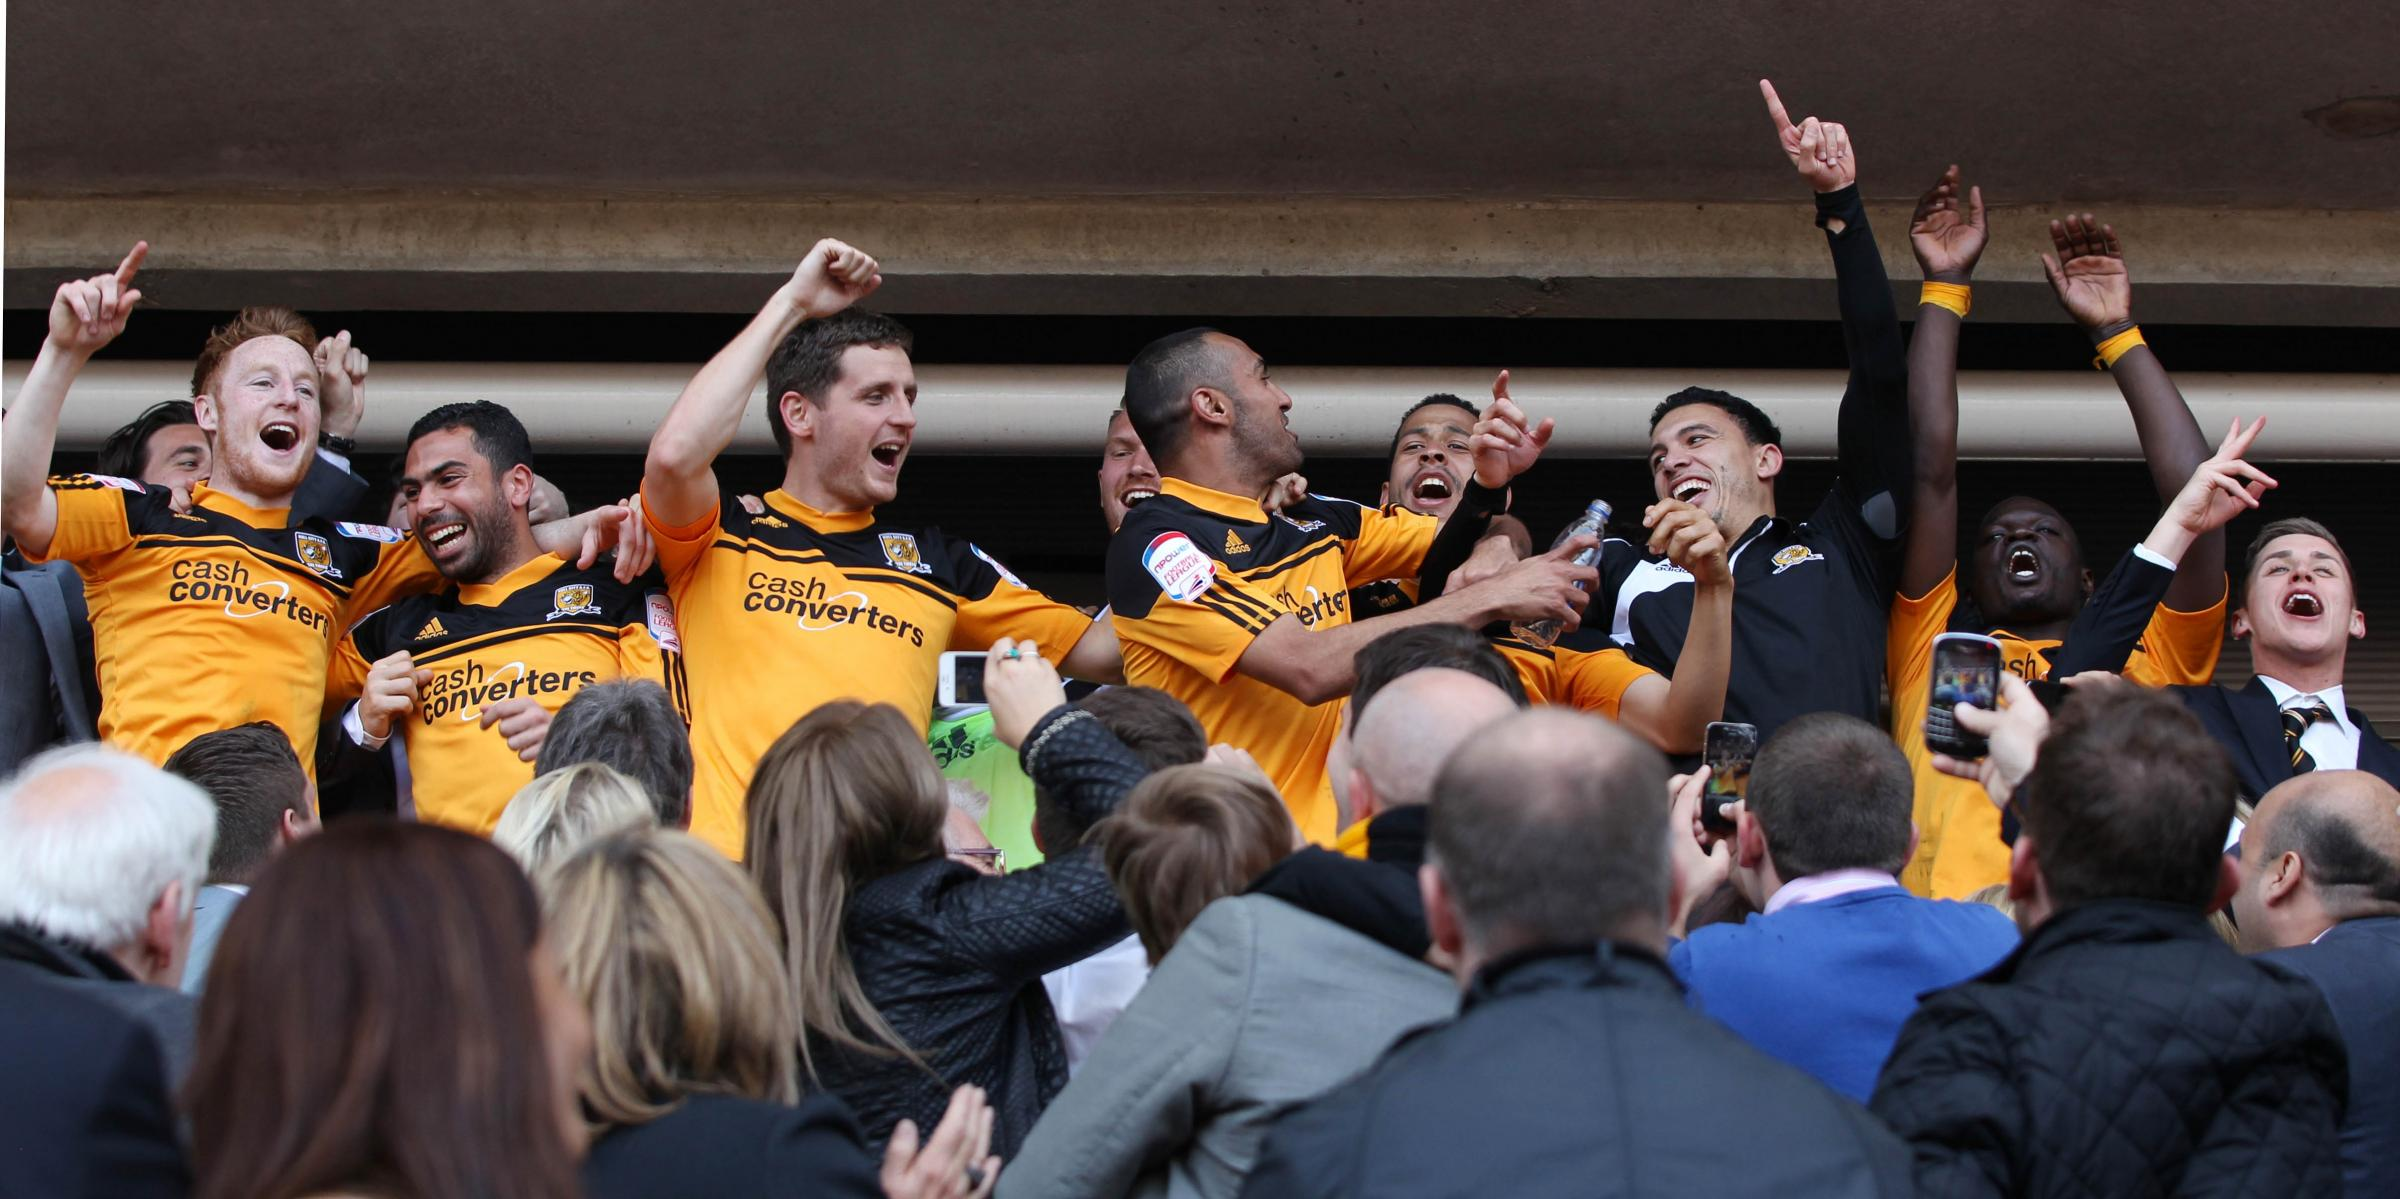 Hull City made a £26m loss when securing automatic promotion last season. Picture: Action Images